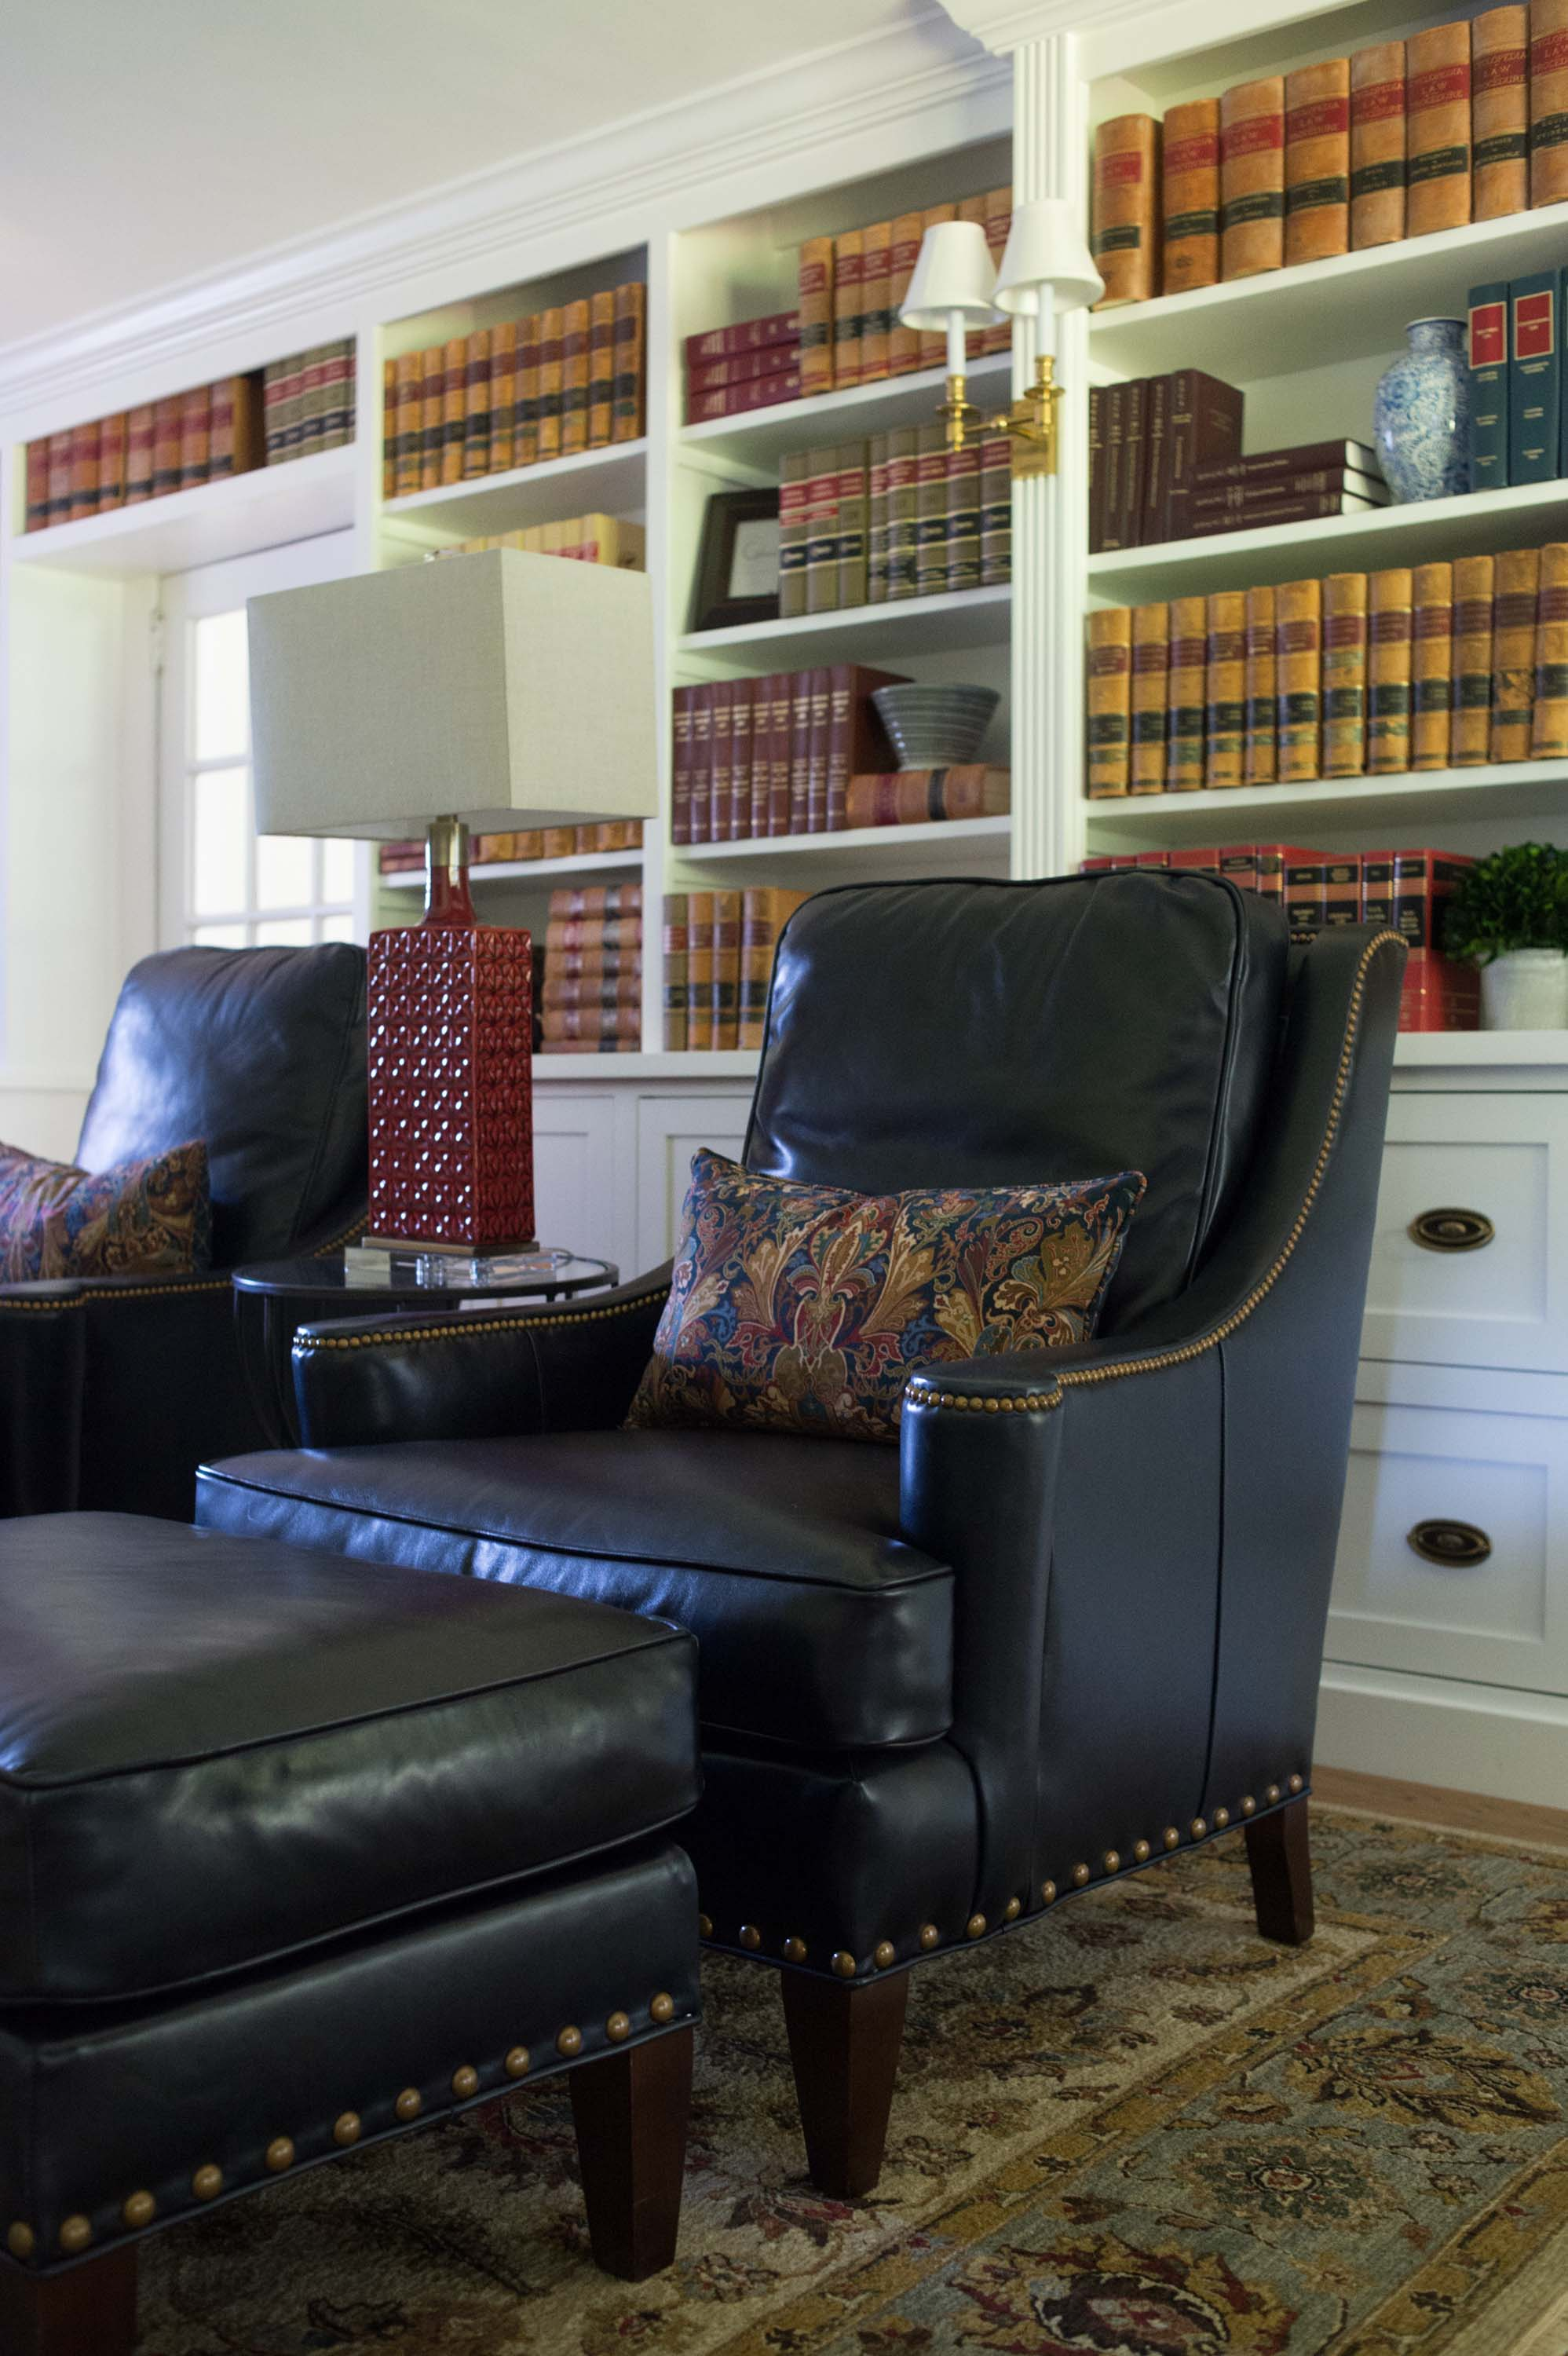 House library with arm chair, ottoman and white book storage